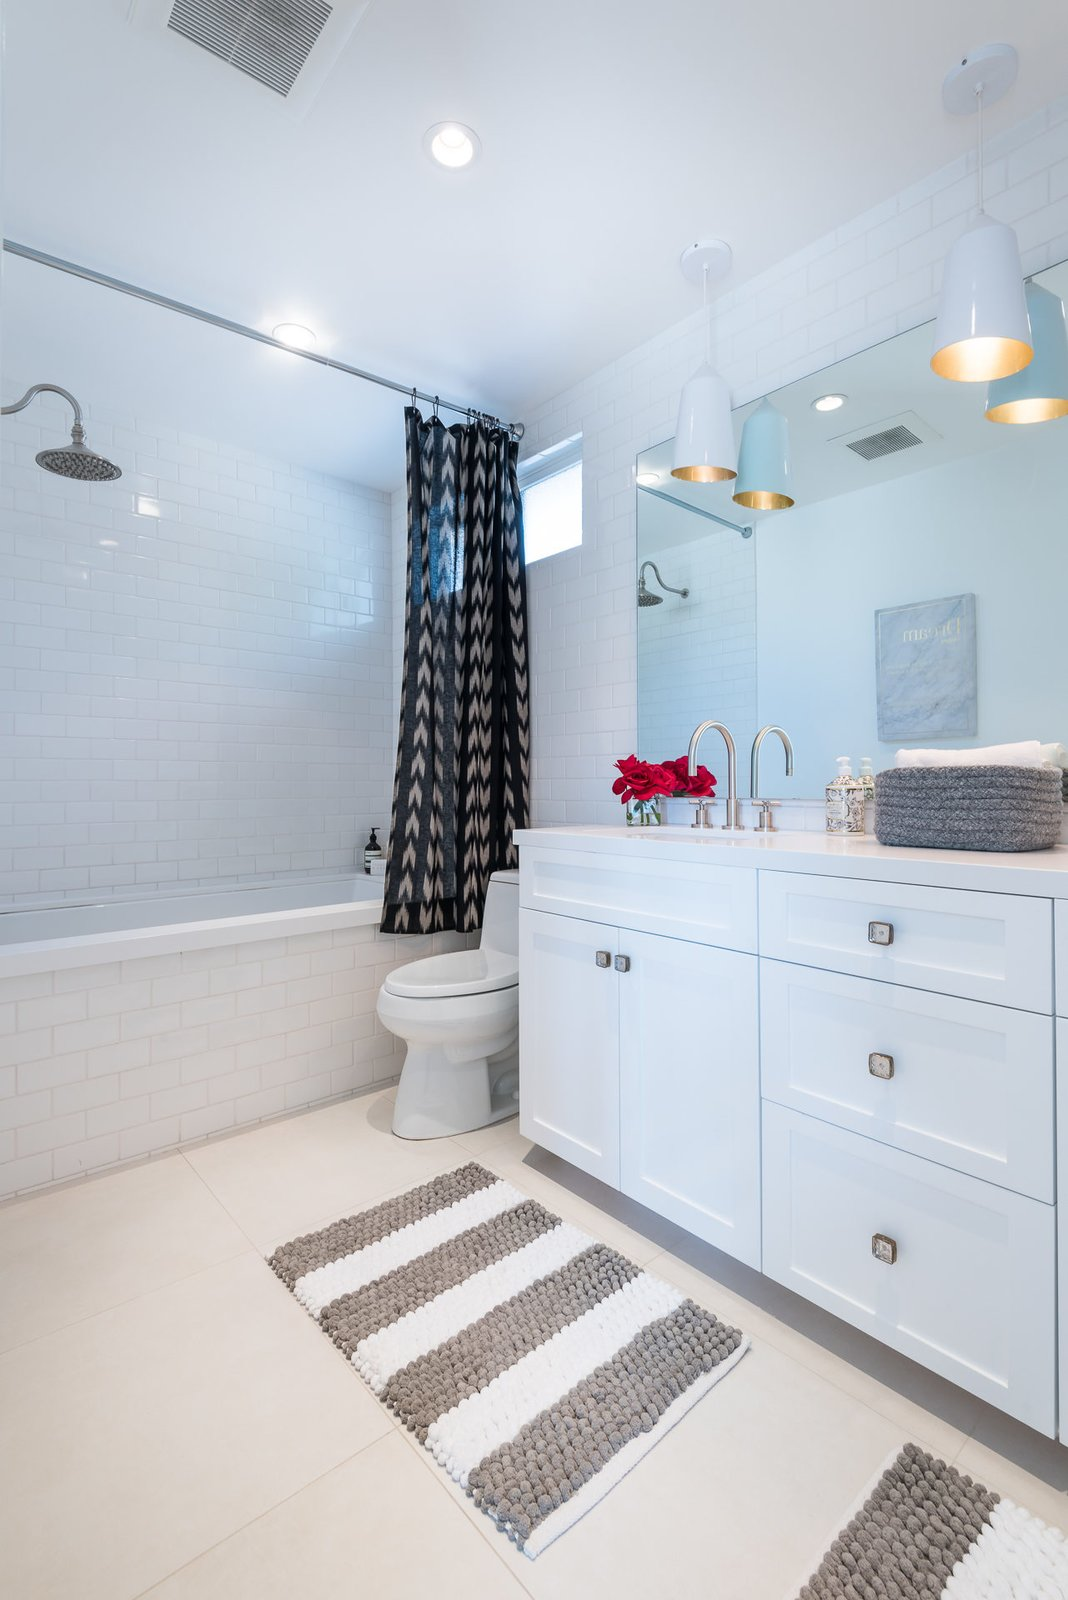 Tagged: Bath Room.  Mid-Century Meets Boho Chic by Zillow